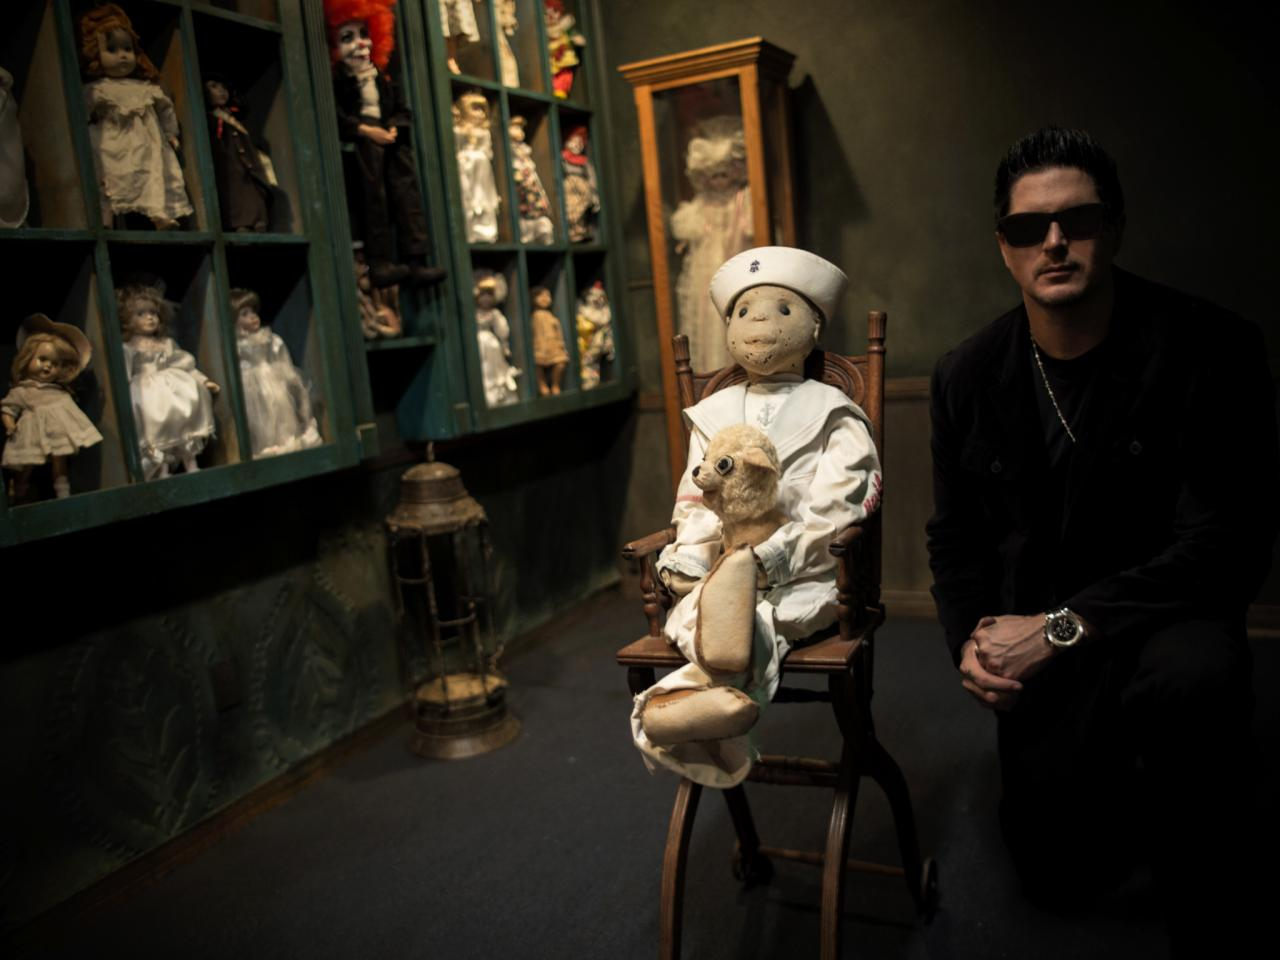 Robert the Doll - Zak Bagans Talks Deadly Possessions, His Museum, and the Dangers of Haunted Objects